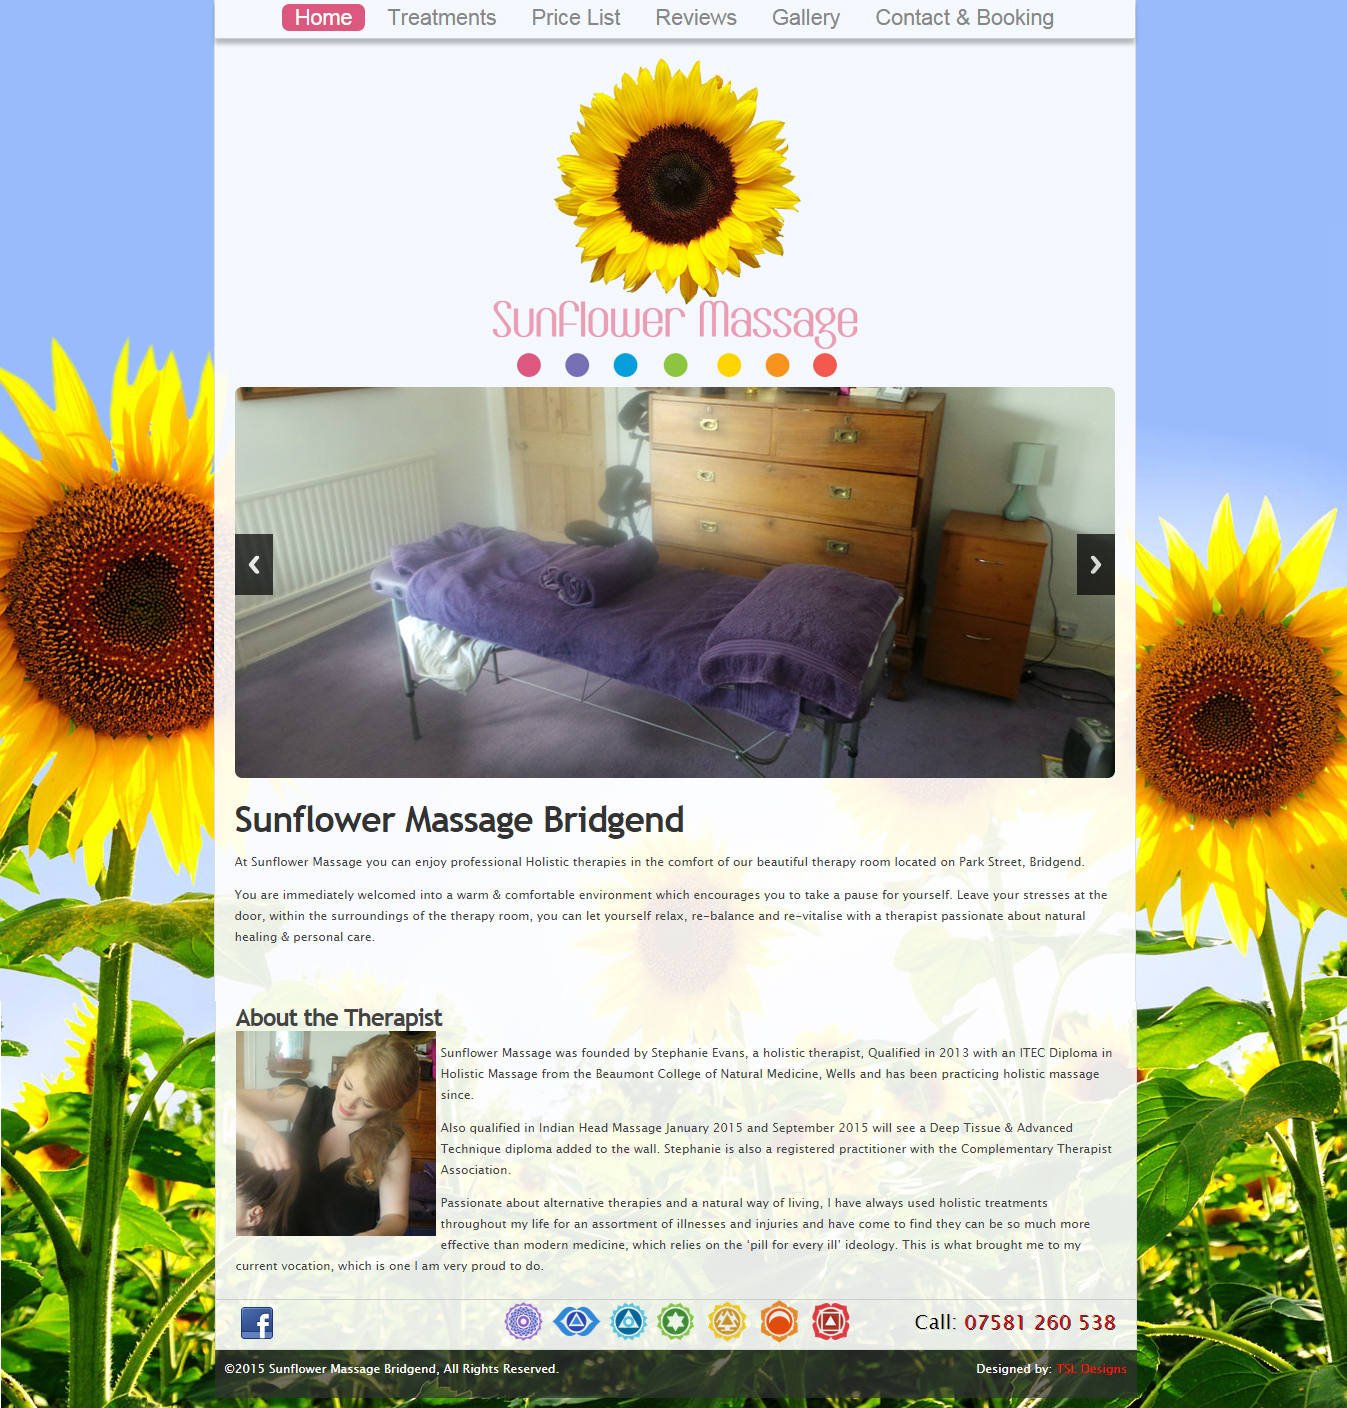 Sunflower Massage Website Home Screen